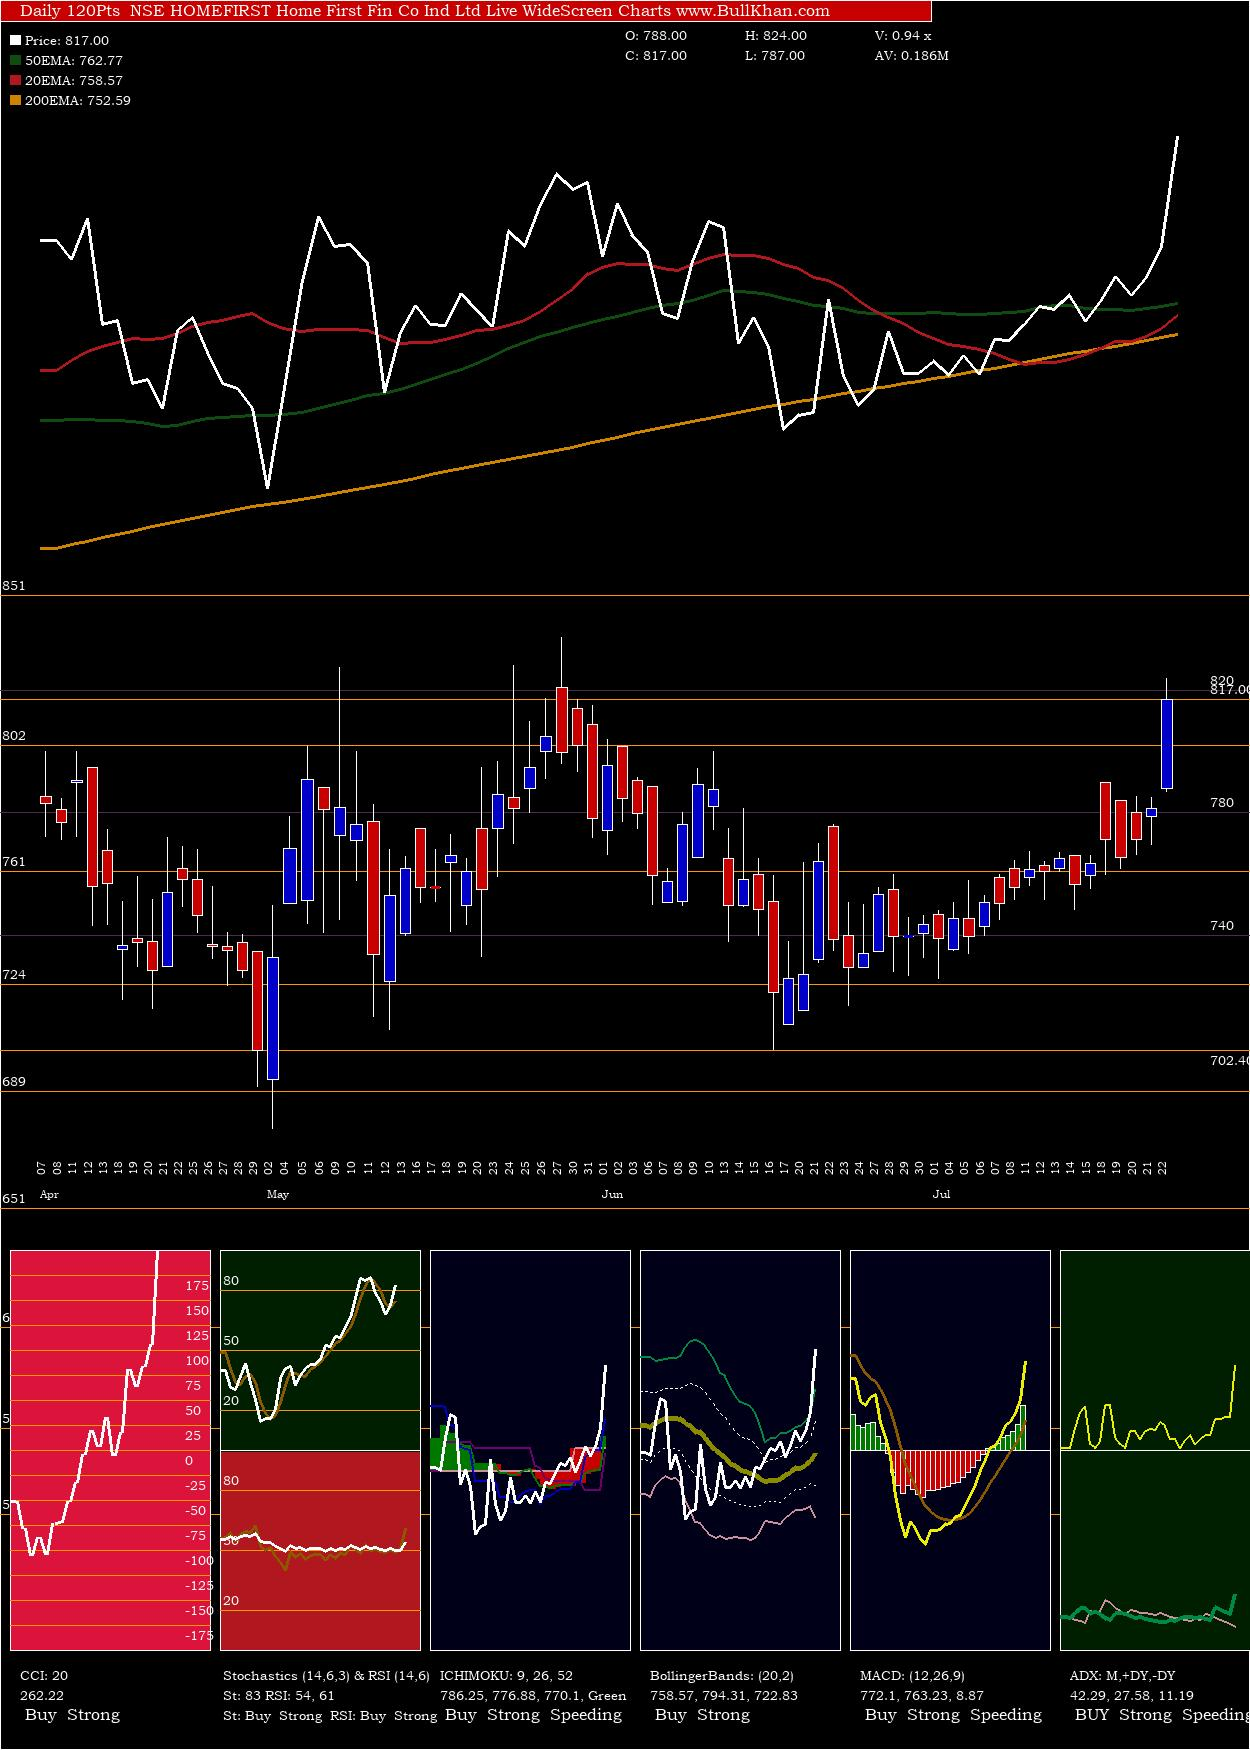 Home First charts and indicators